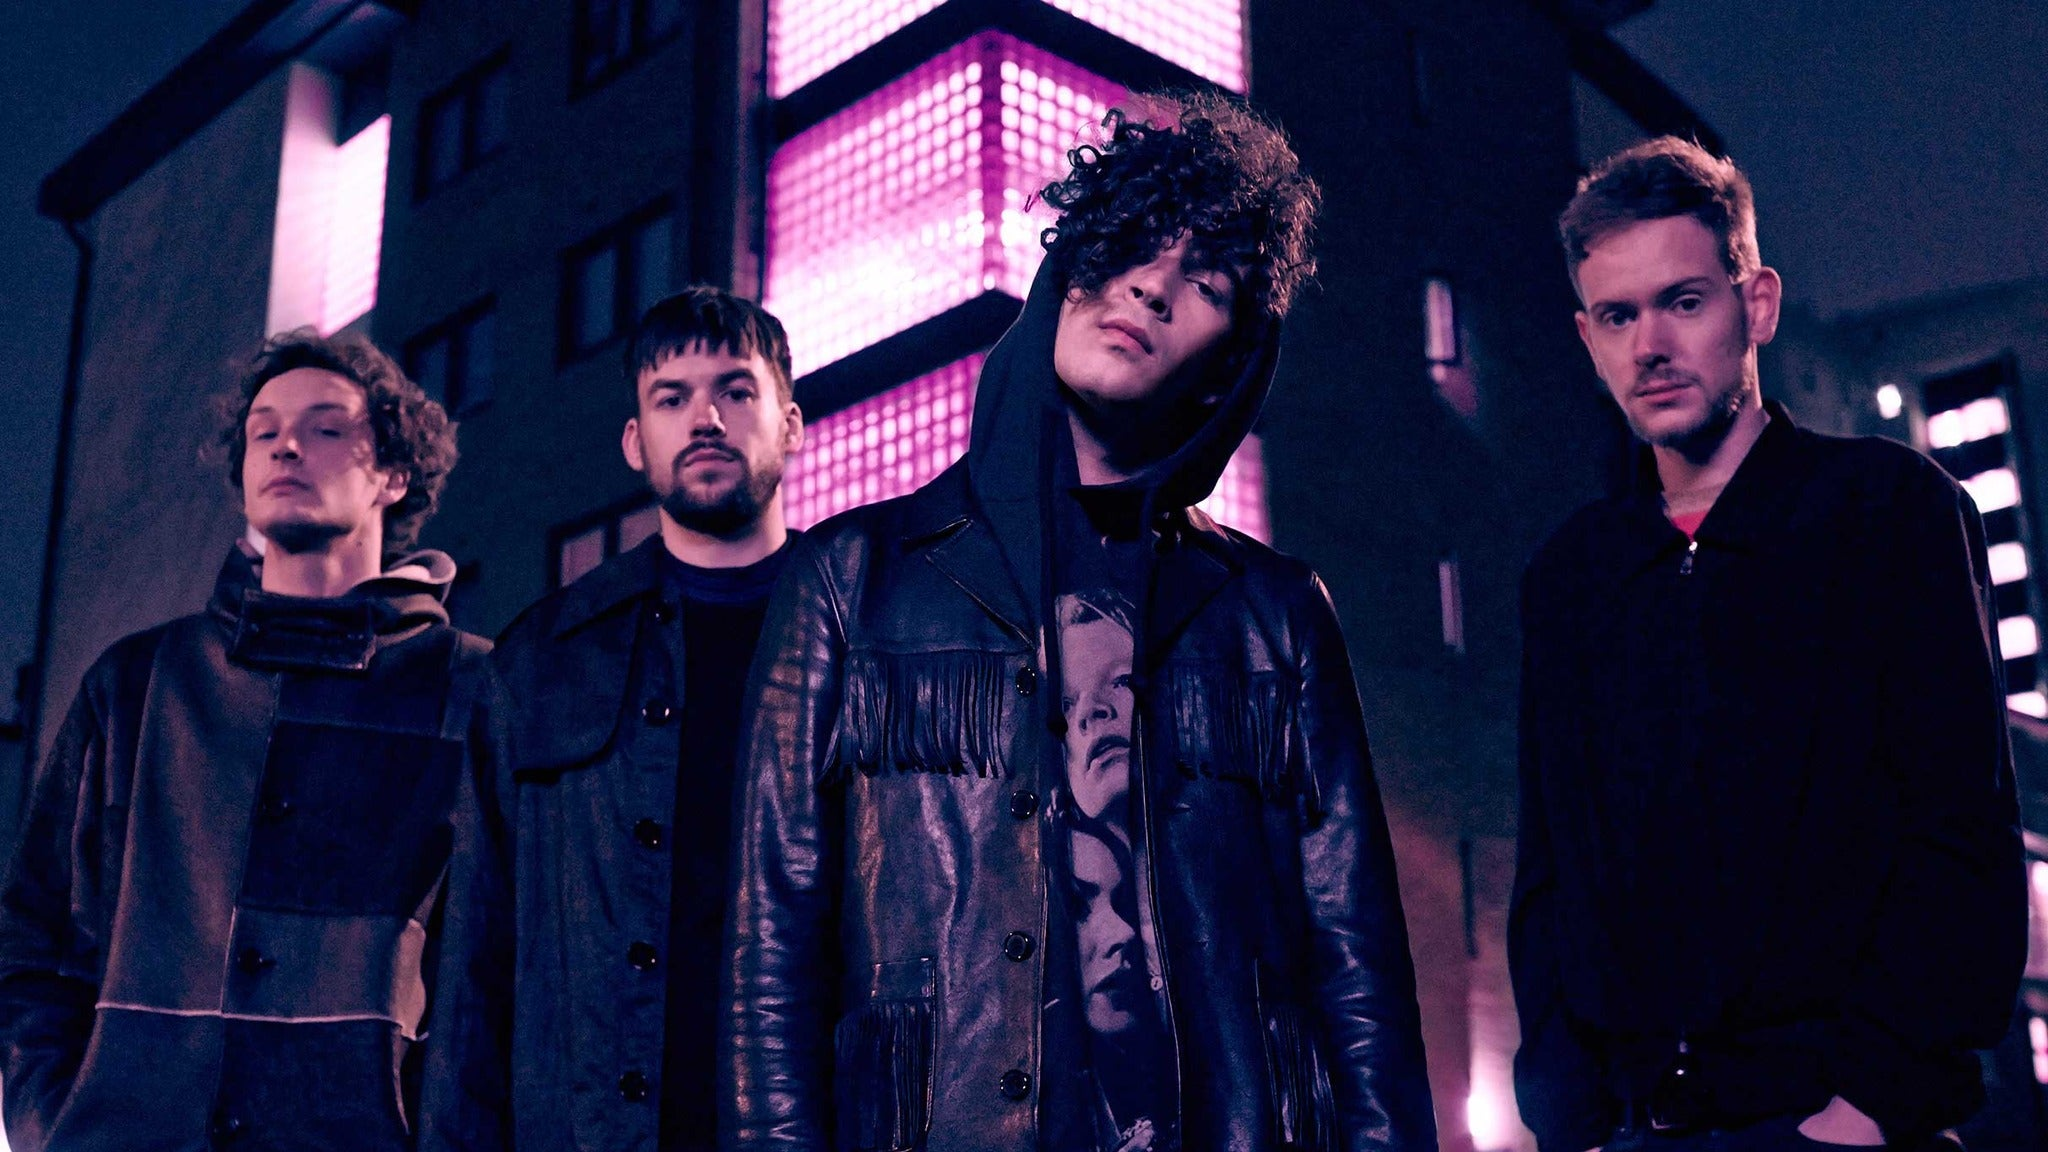 106.7 KROQ Presents The 1975 at The Forum